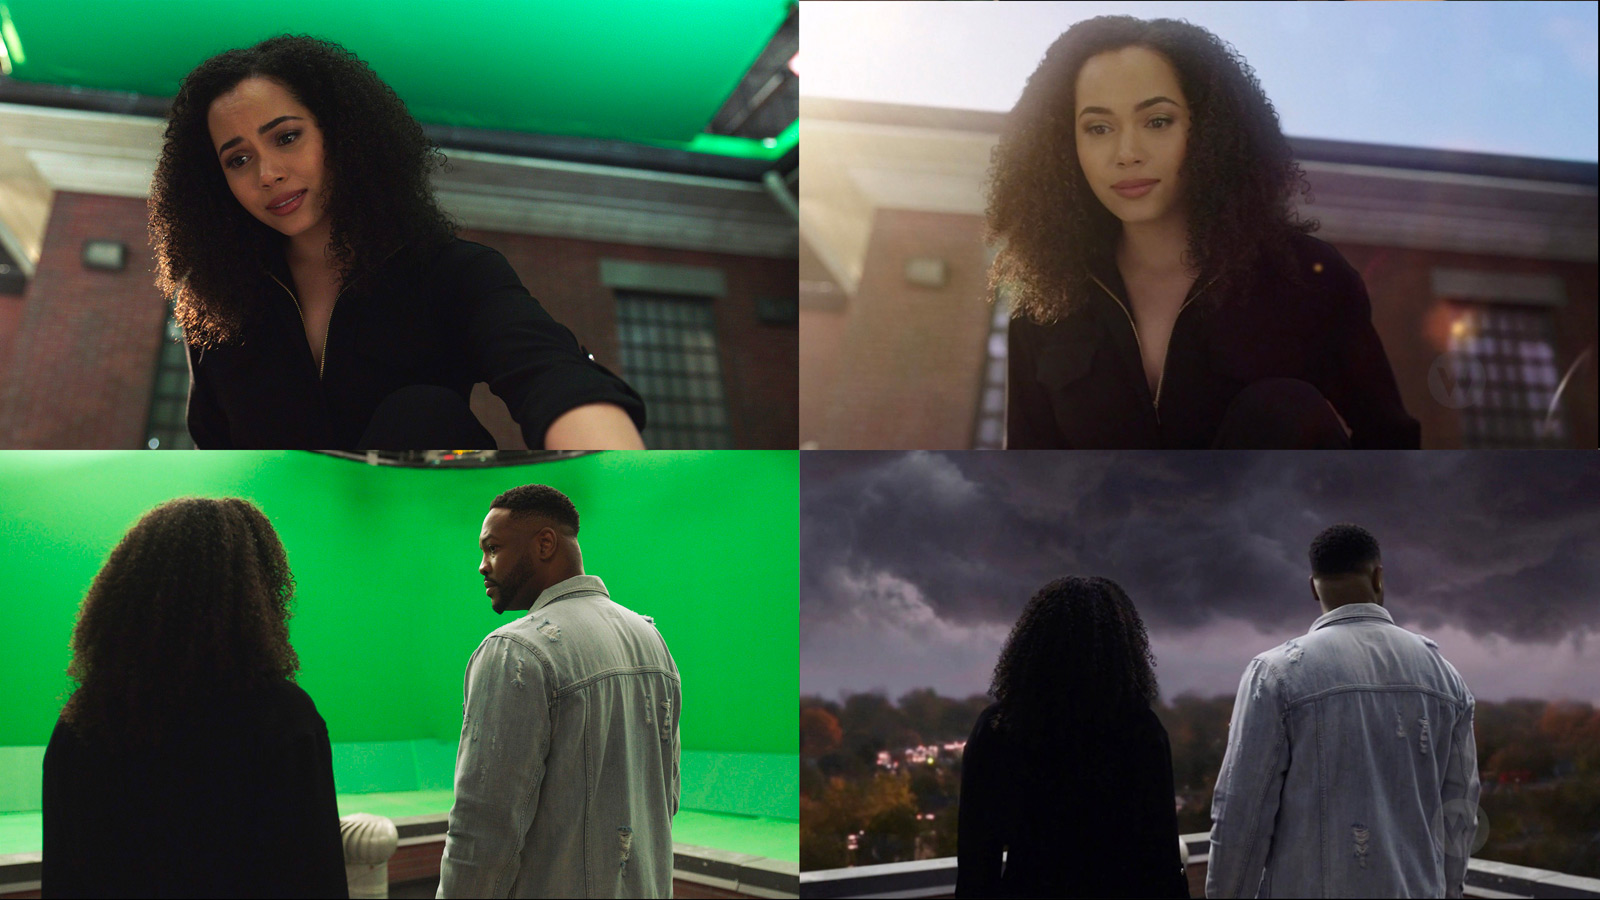 CHARMED: S1 - HOSPITAL ROOFTOP - SCREEN STILLS COMPOSITE